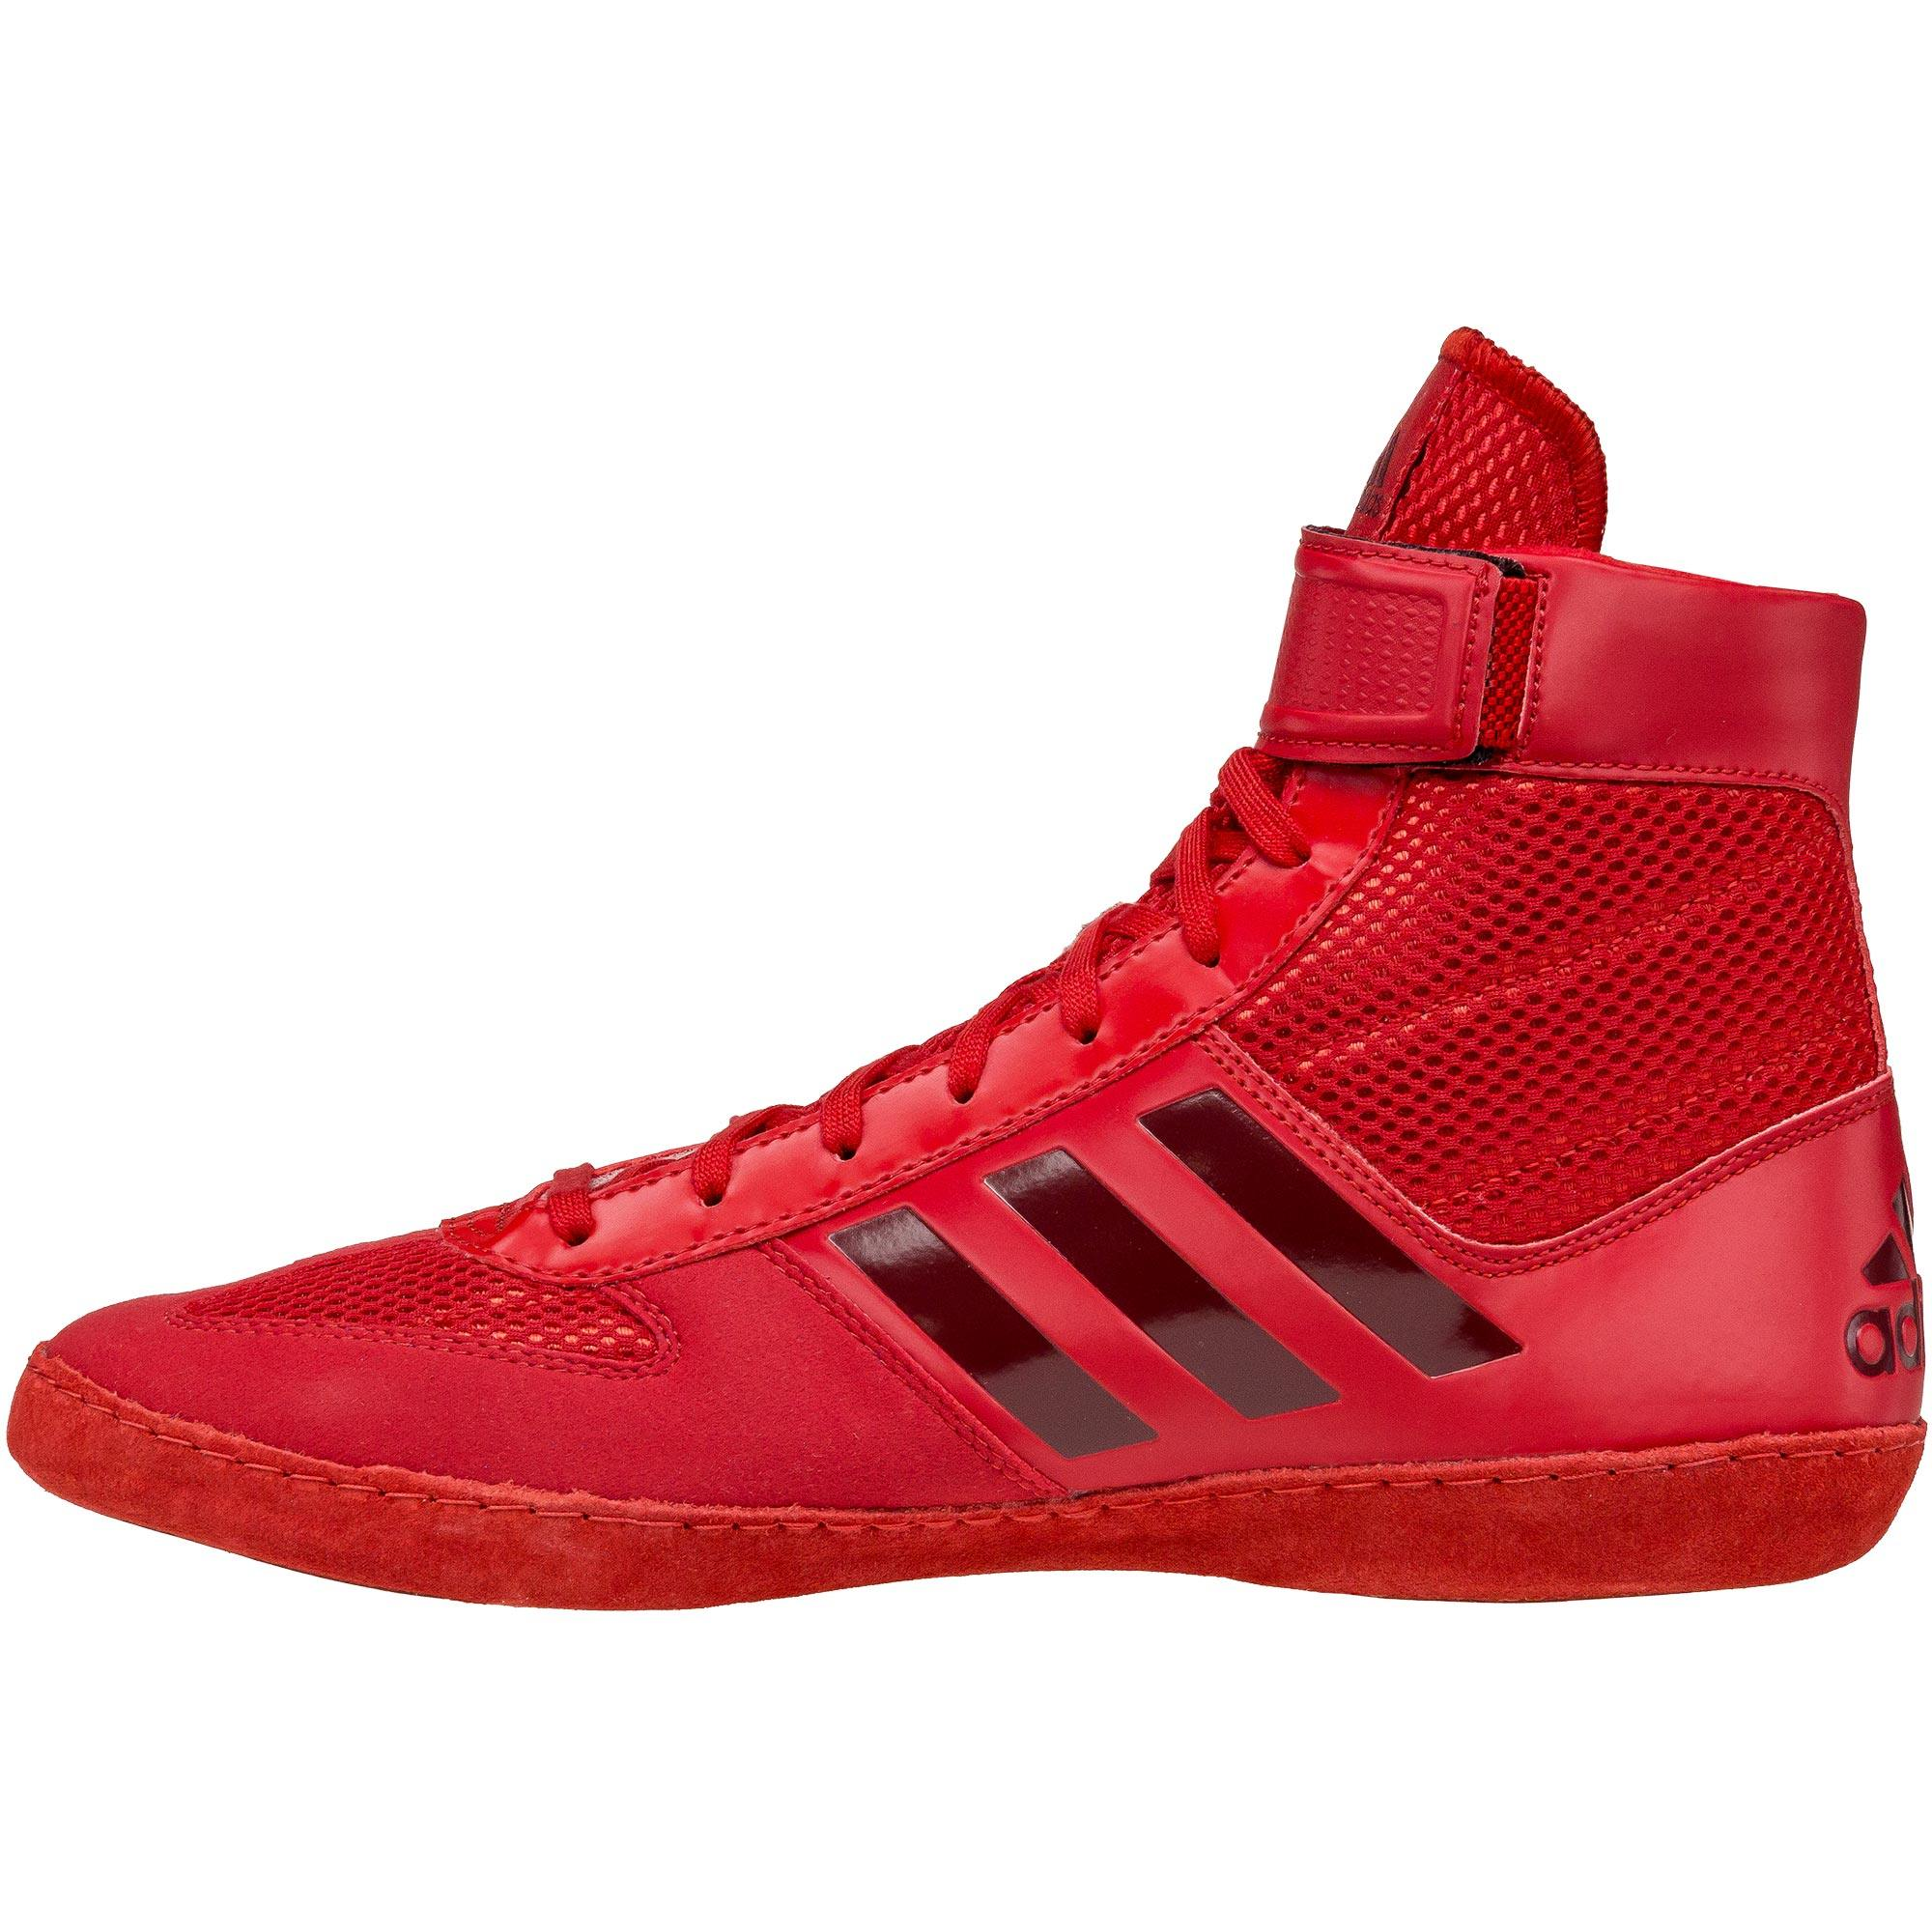 new styles 2f016 410c9 ... Comba Speed 5 Red Dark Red frontAdidas Comba Speed 5 Red Dark Red back Adidas Comba Speed 5 Red Dark Red soleAdidas Comba Speed 5 Red Dark Red top